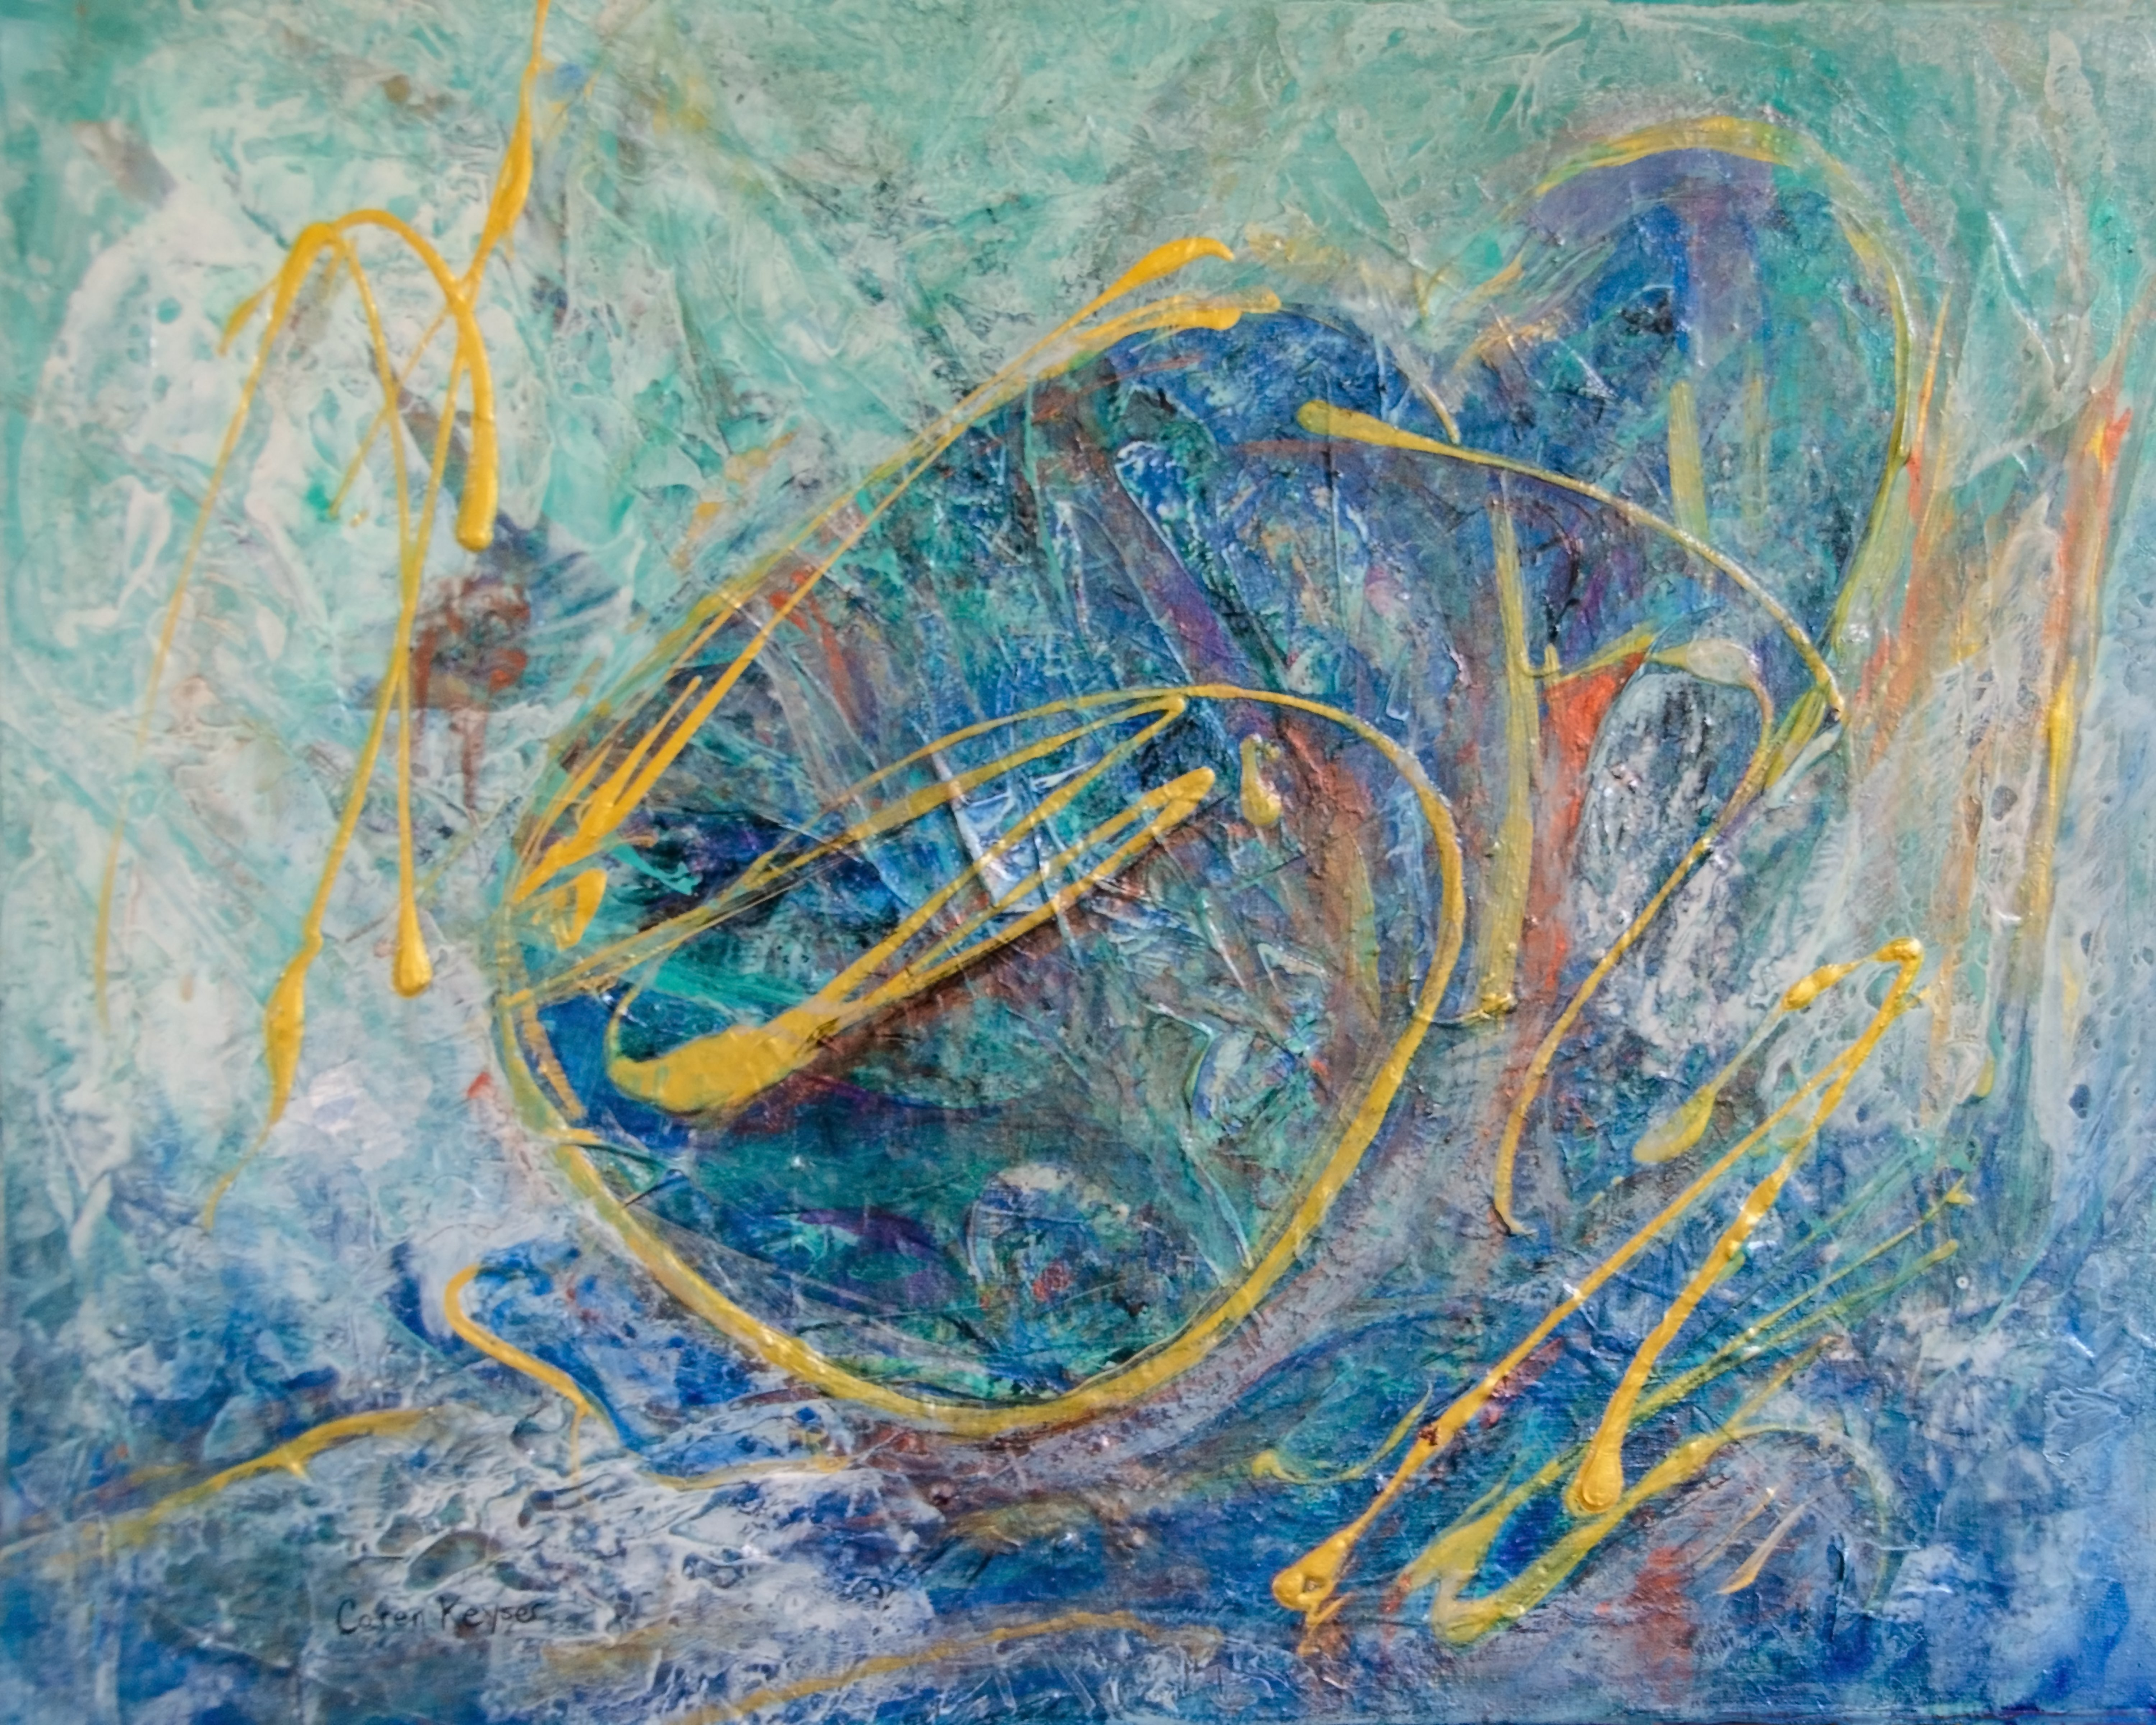 Caren Keyser; Blue Crouch, 2019, Original Painting Acrylic, 20 x 16 inches. Artwork description: 241 Metallic paints make this painting sing.  The figure is drawn in gold over shimmering blues. ...